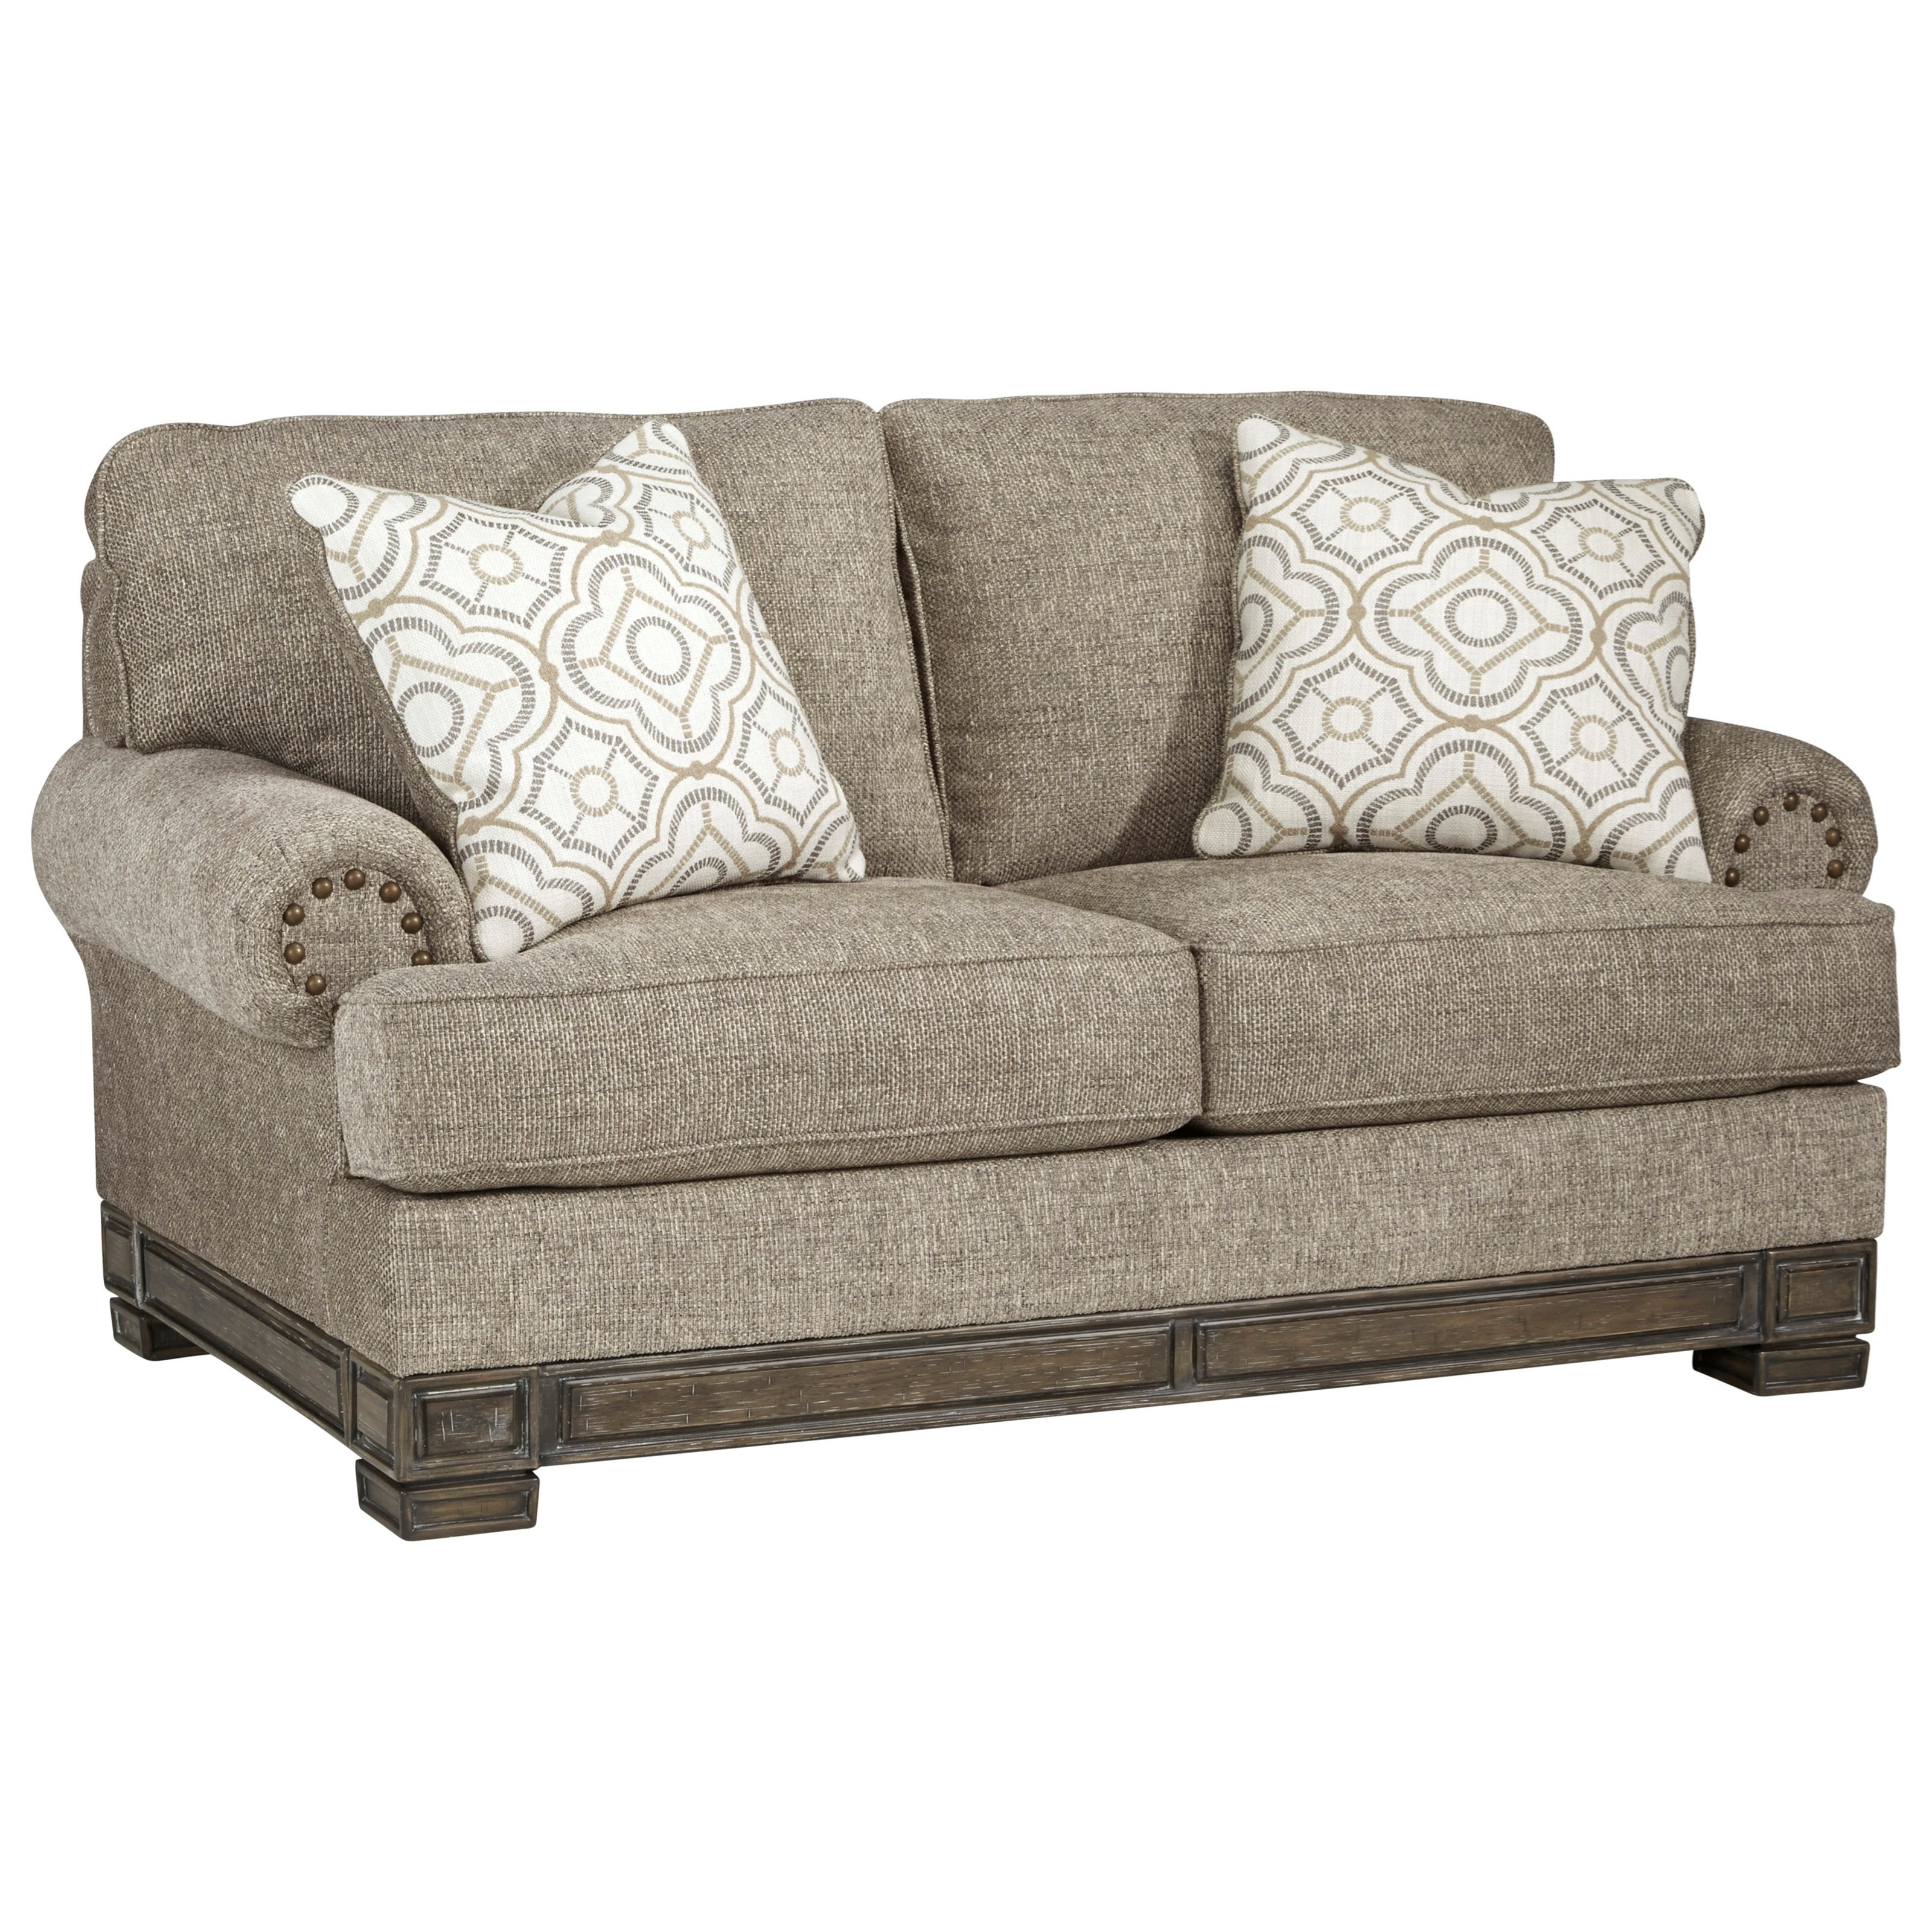 Einsgrove Loveseat by Signature at Walker's Furniture